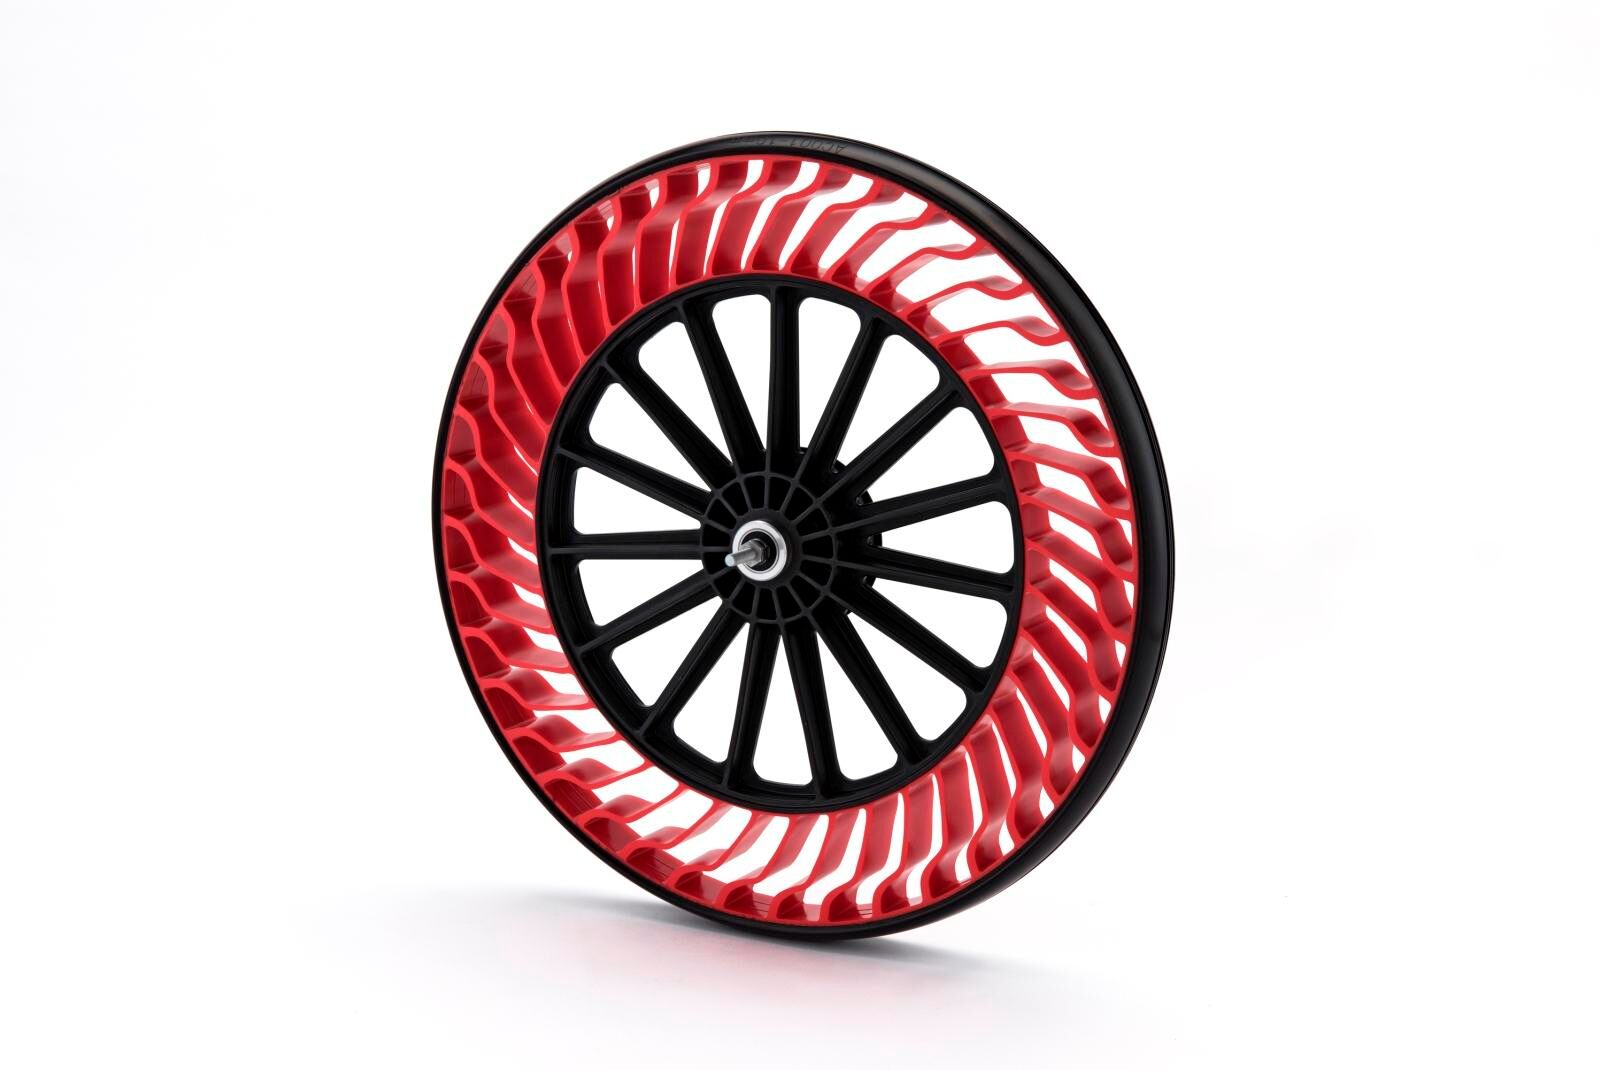 The Bridgestone air free tire concepts on display at CES leverage a proprietary design where tire tread is placed on a unique structure of high-strength, flexible spokes. This eliminates the need for the tire to be filled and maintained with air.